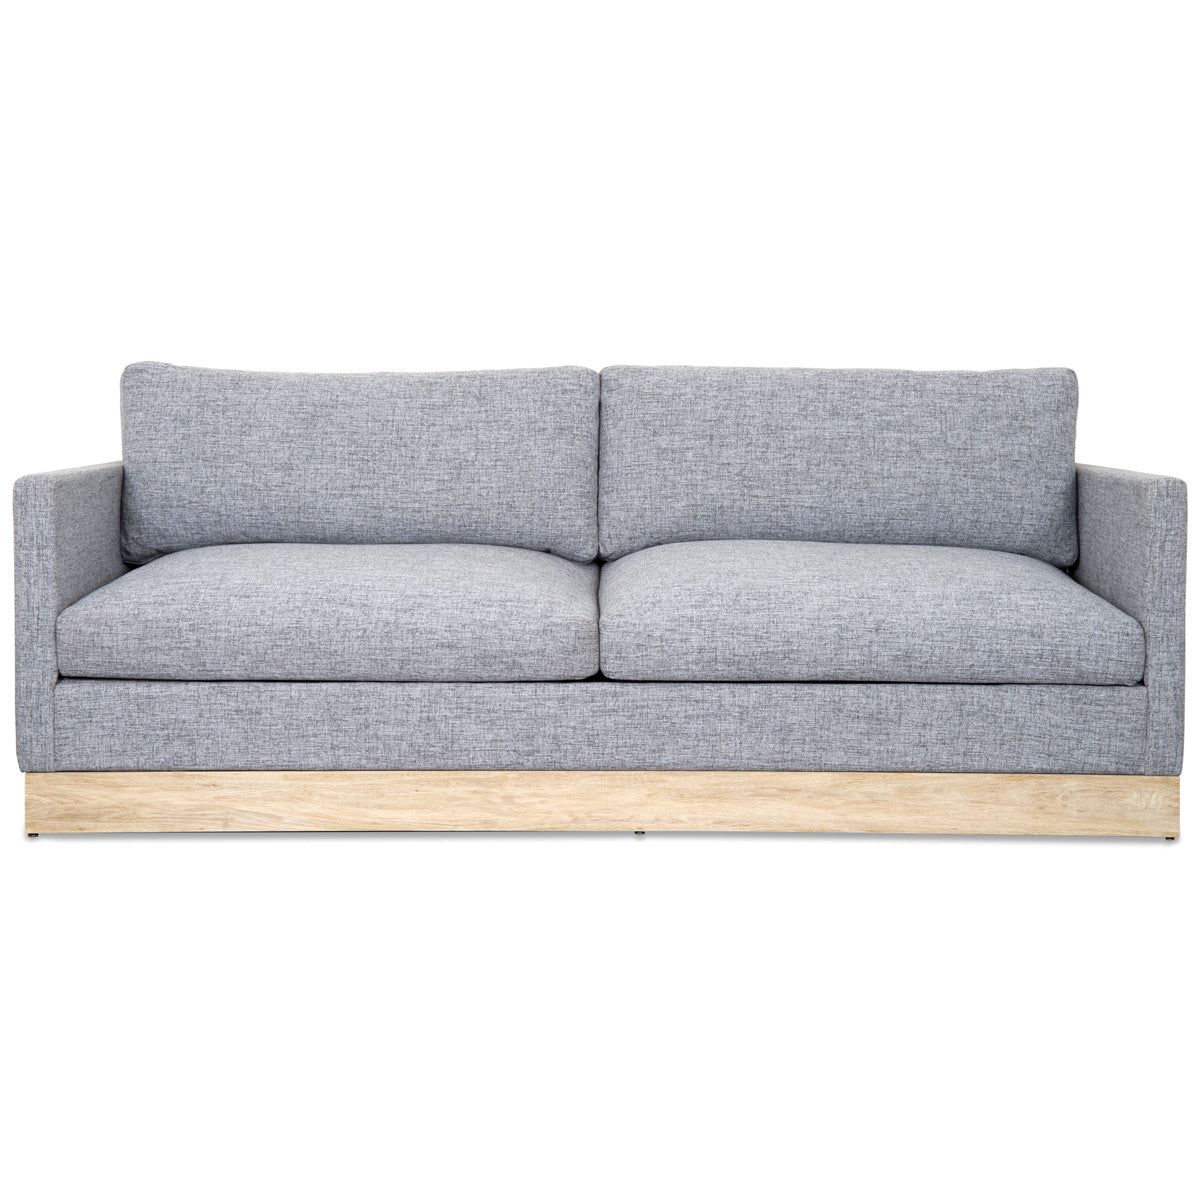 Sorrento Sofa with Pull Out Memory Foam Mattress - ModShop1.com